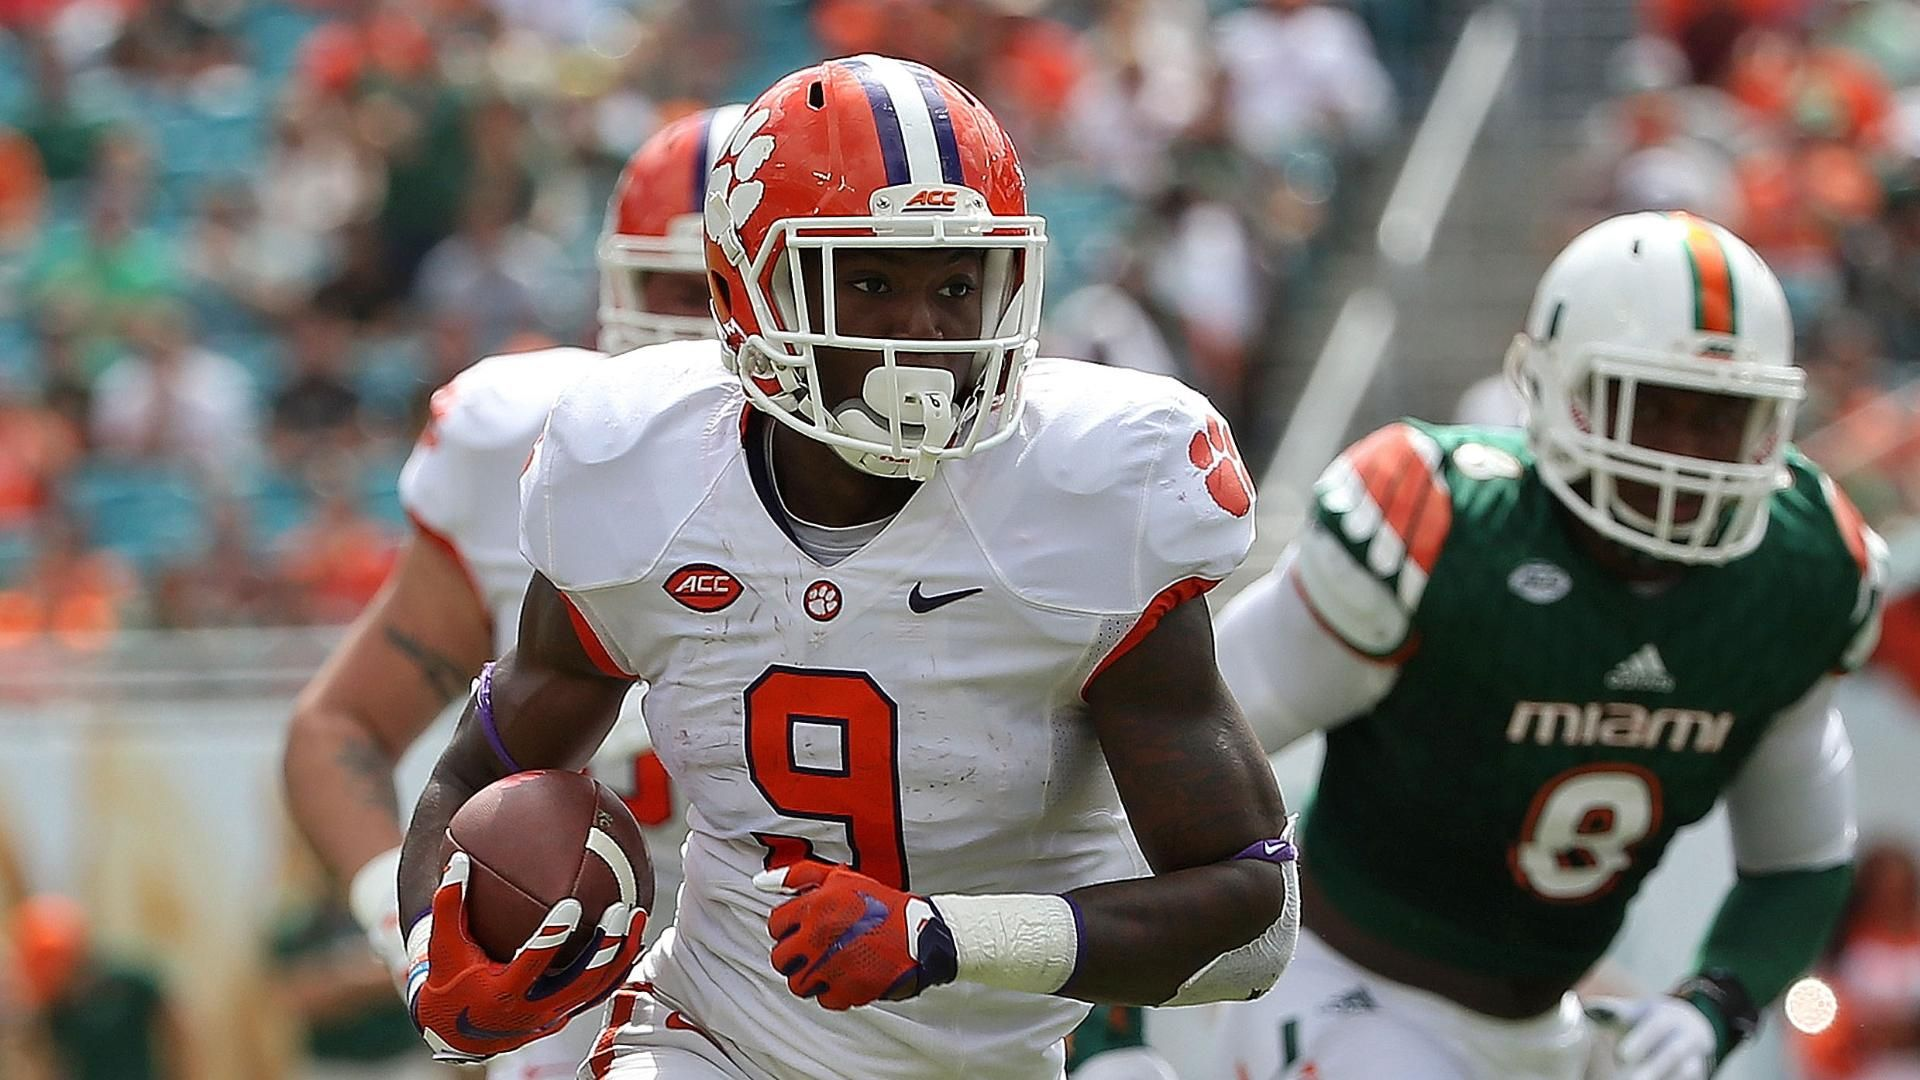 Clemson shuts out Miami in grand fashion